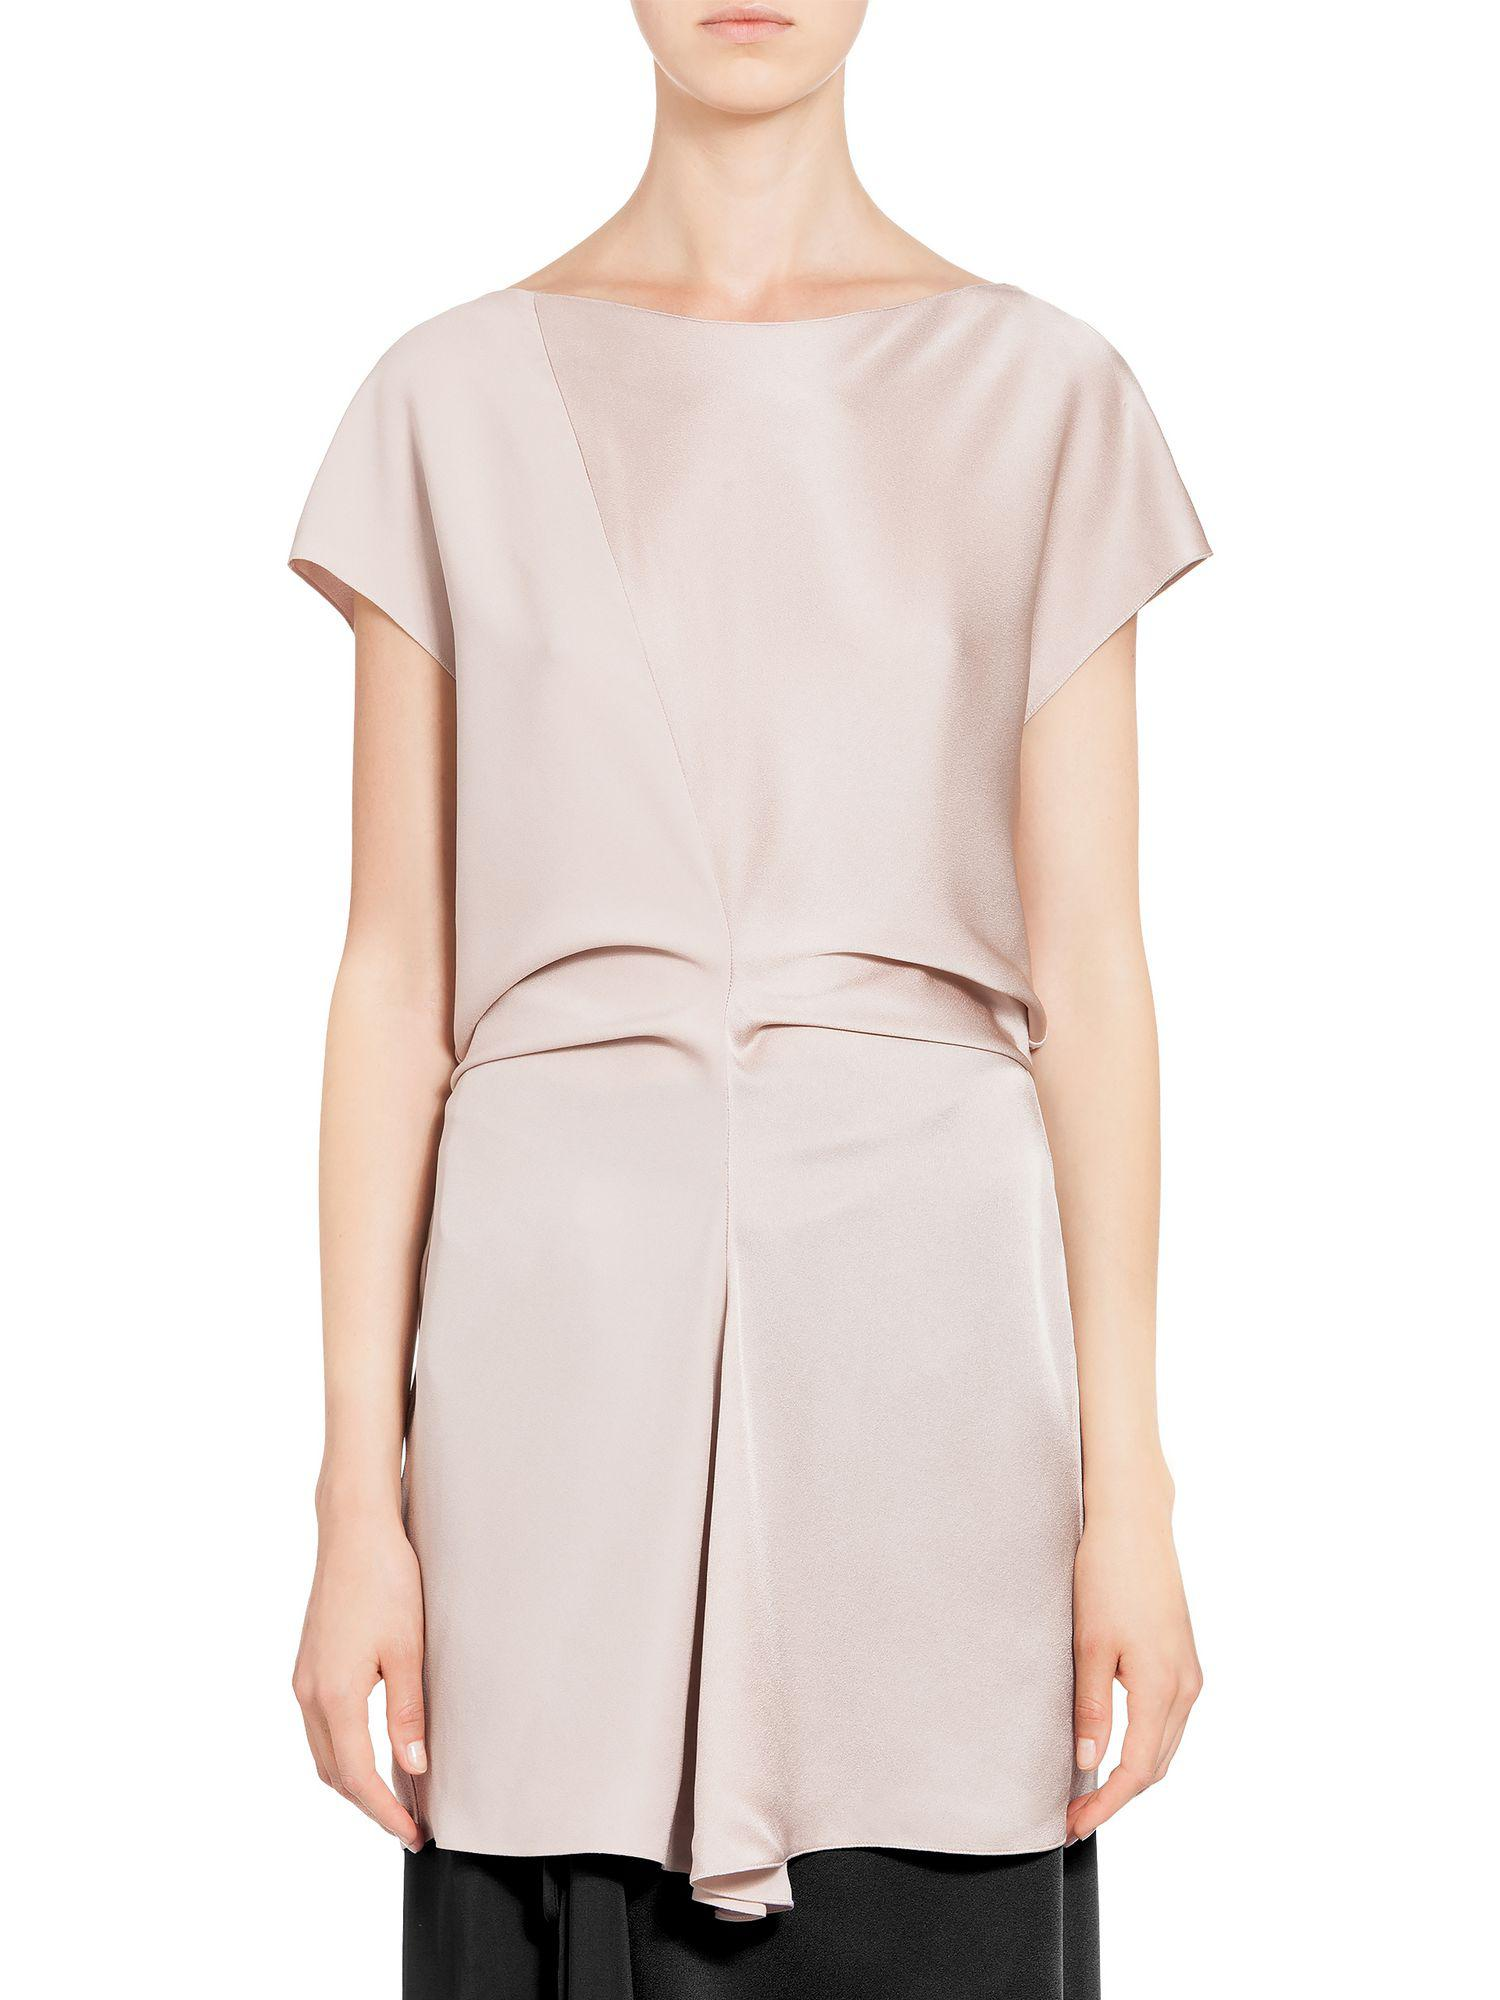 Outlet Locations Discount Aaa Boat-neck satin-back crepe blouse Marni Purchase Cheap Price Clearance Order Original Cheap Online oAIFD